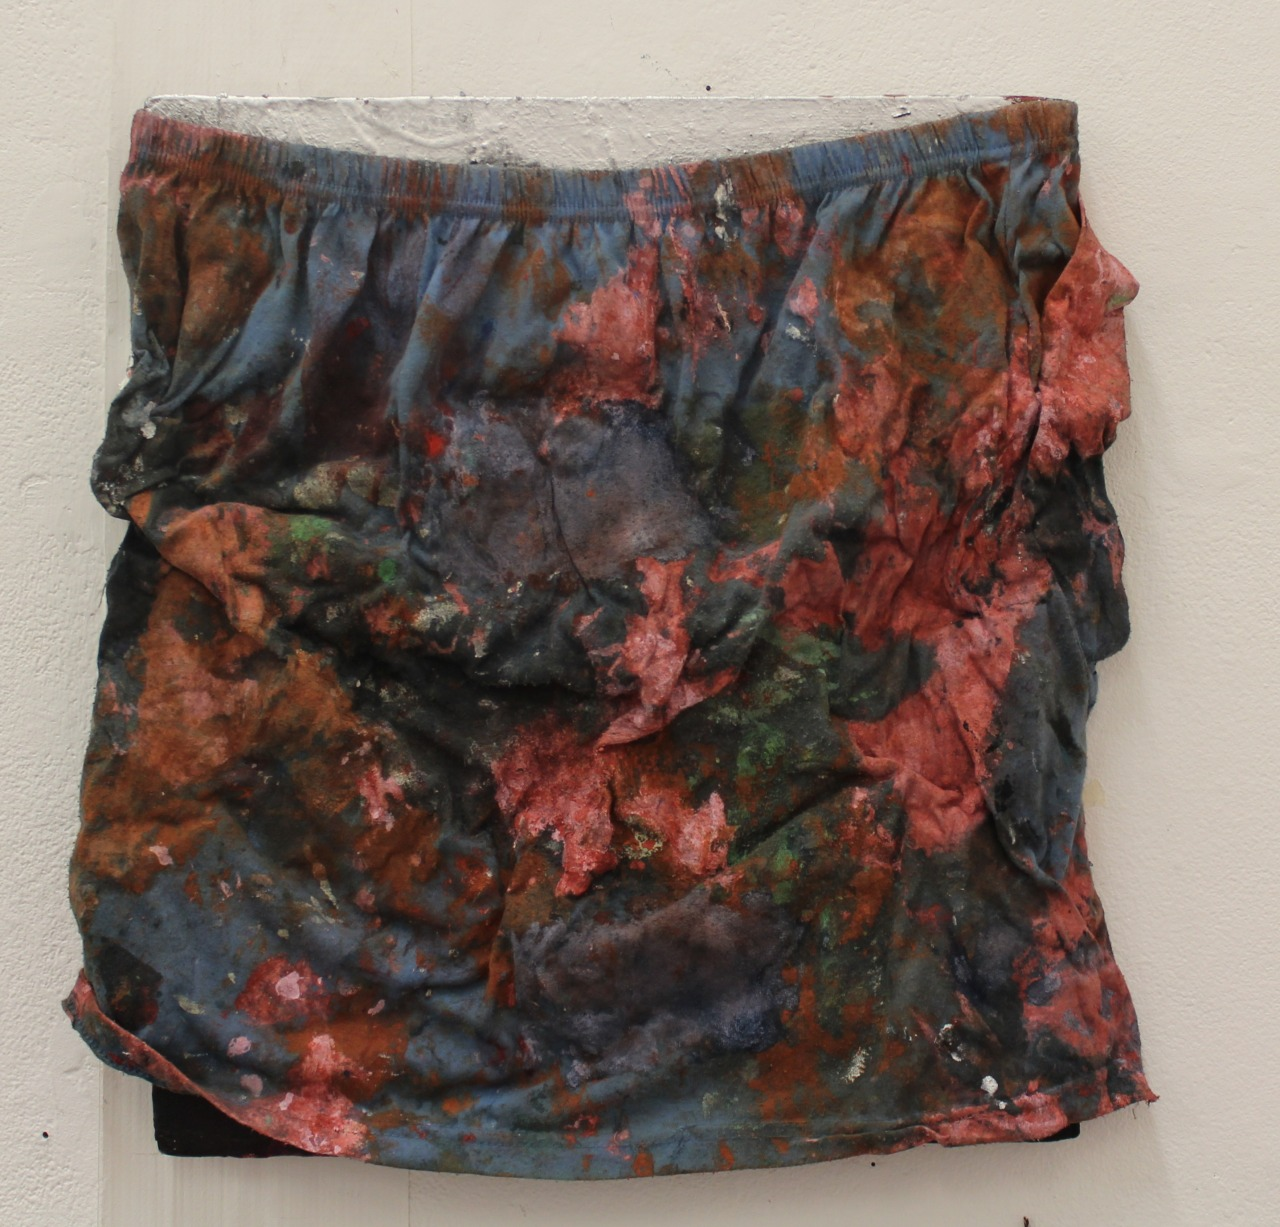 Monet Shorts Old painting shorts on board